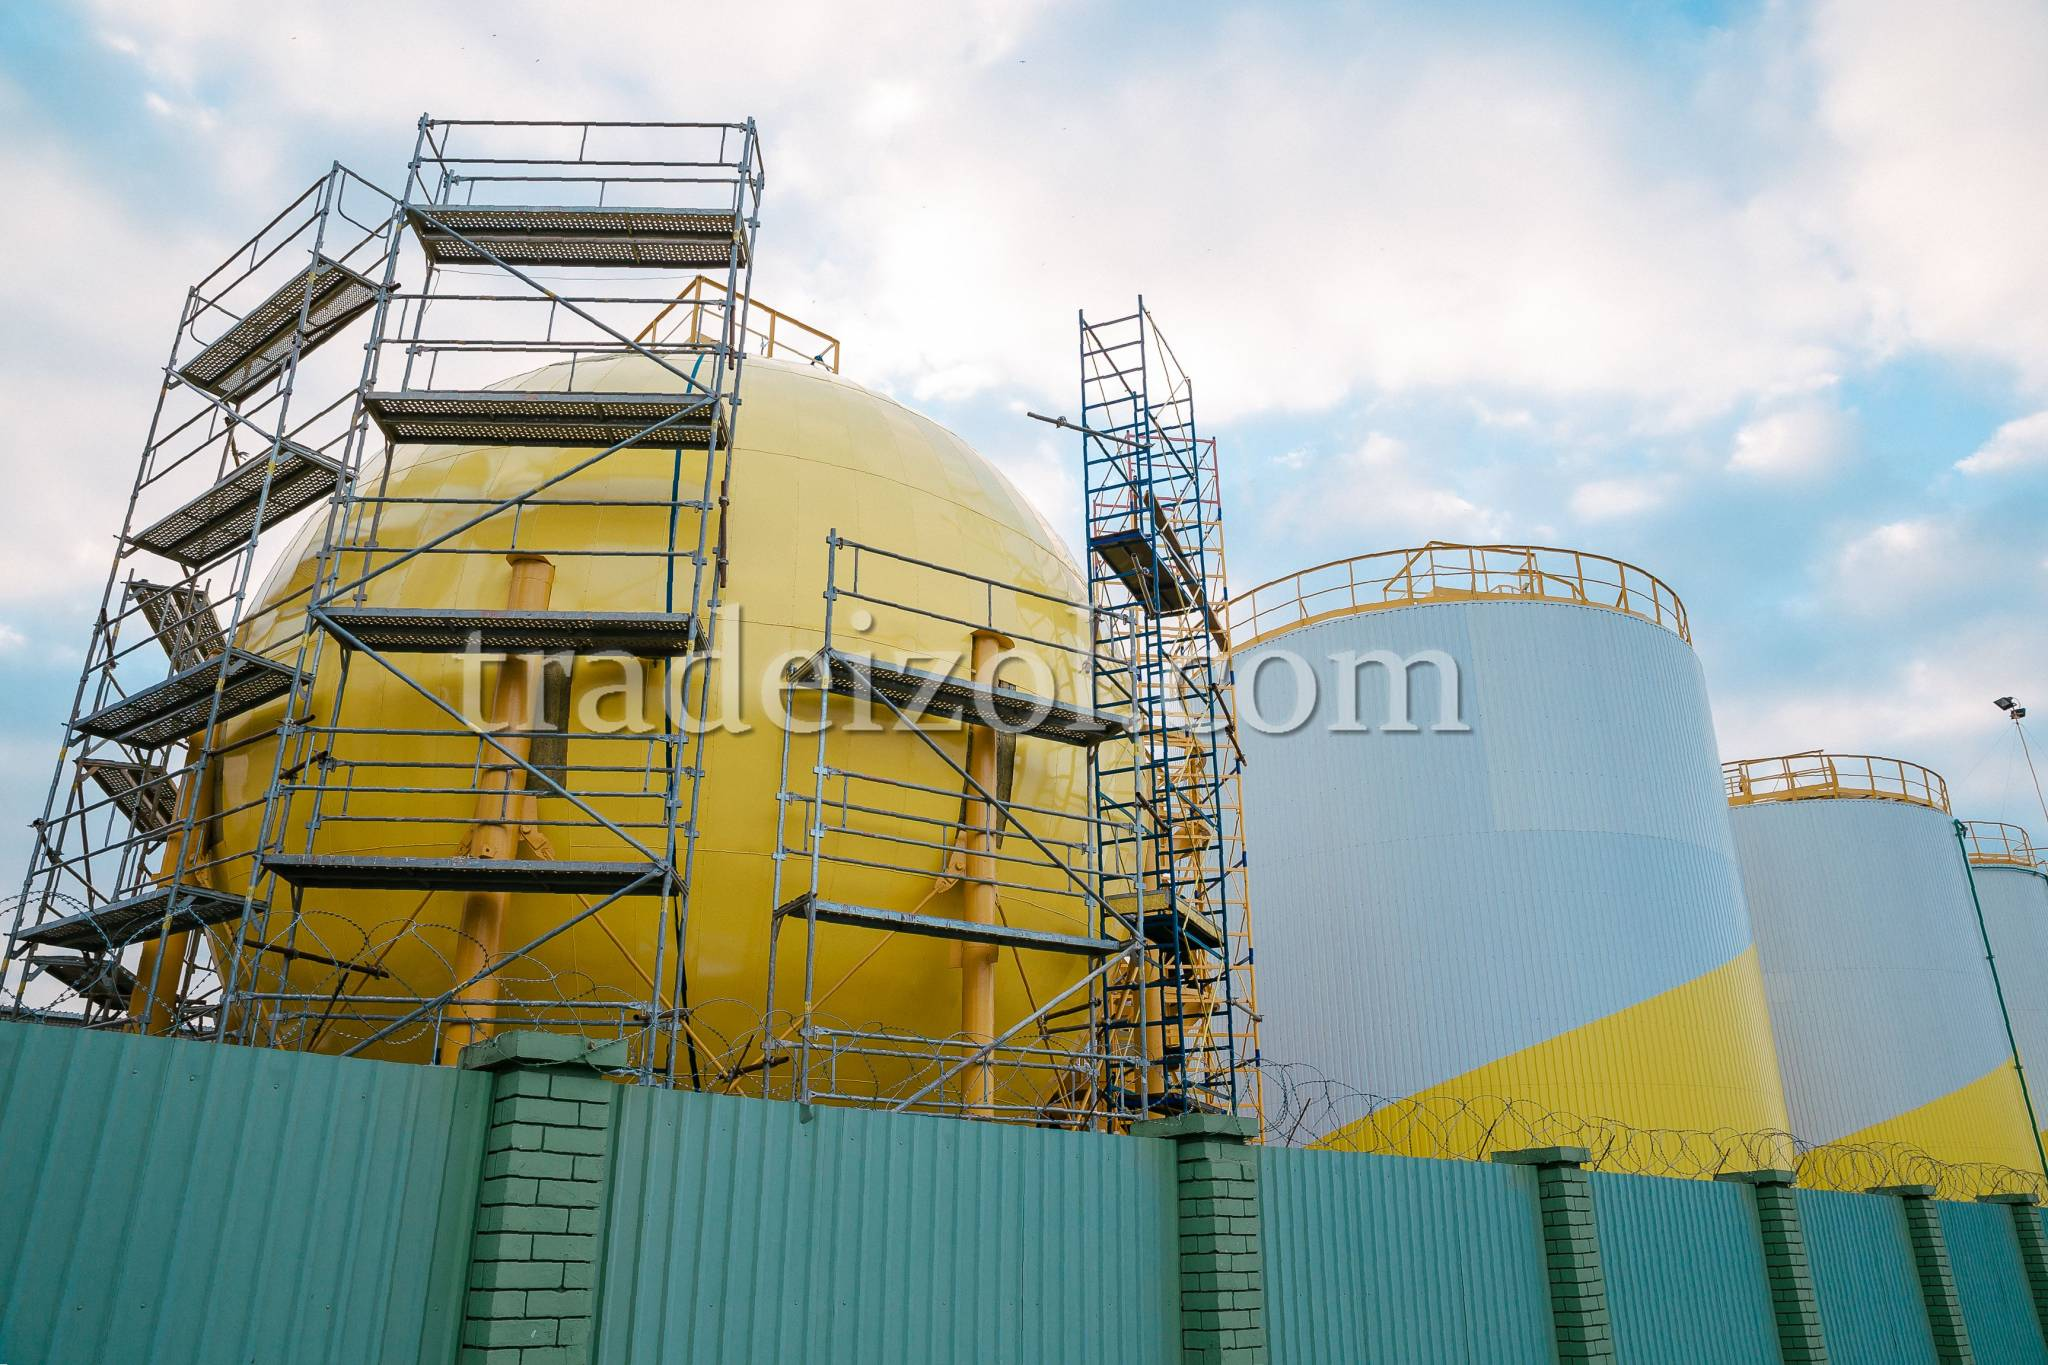 Metal cladding of the storage tanks